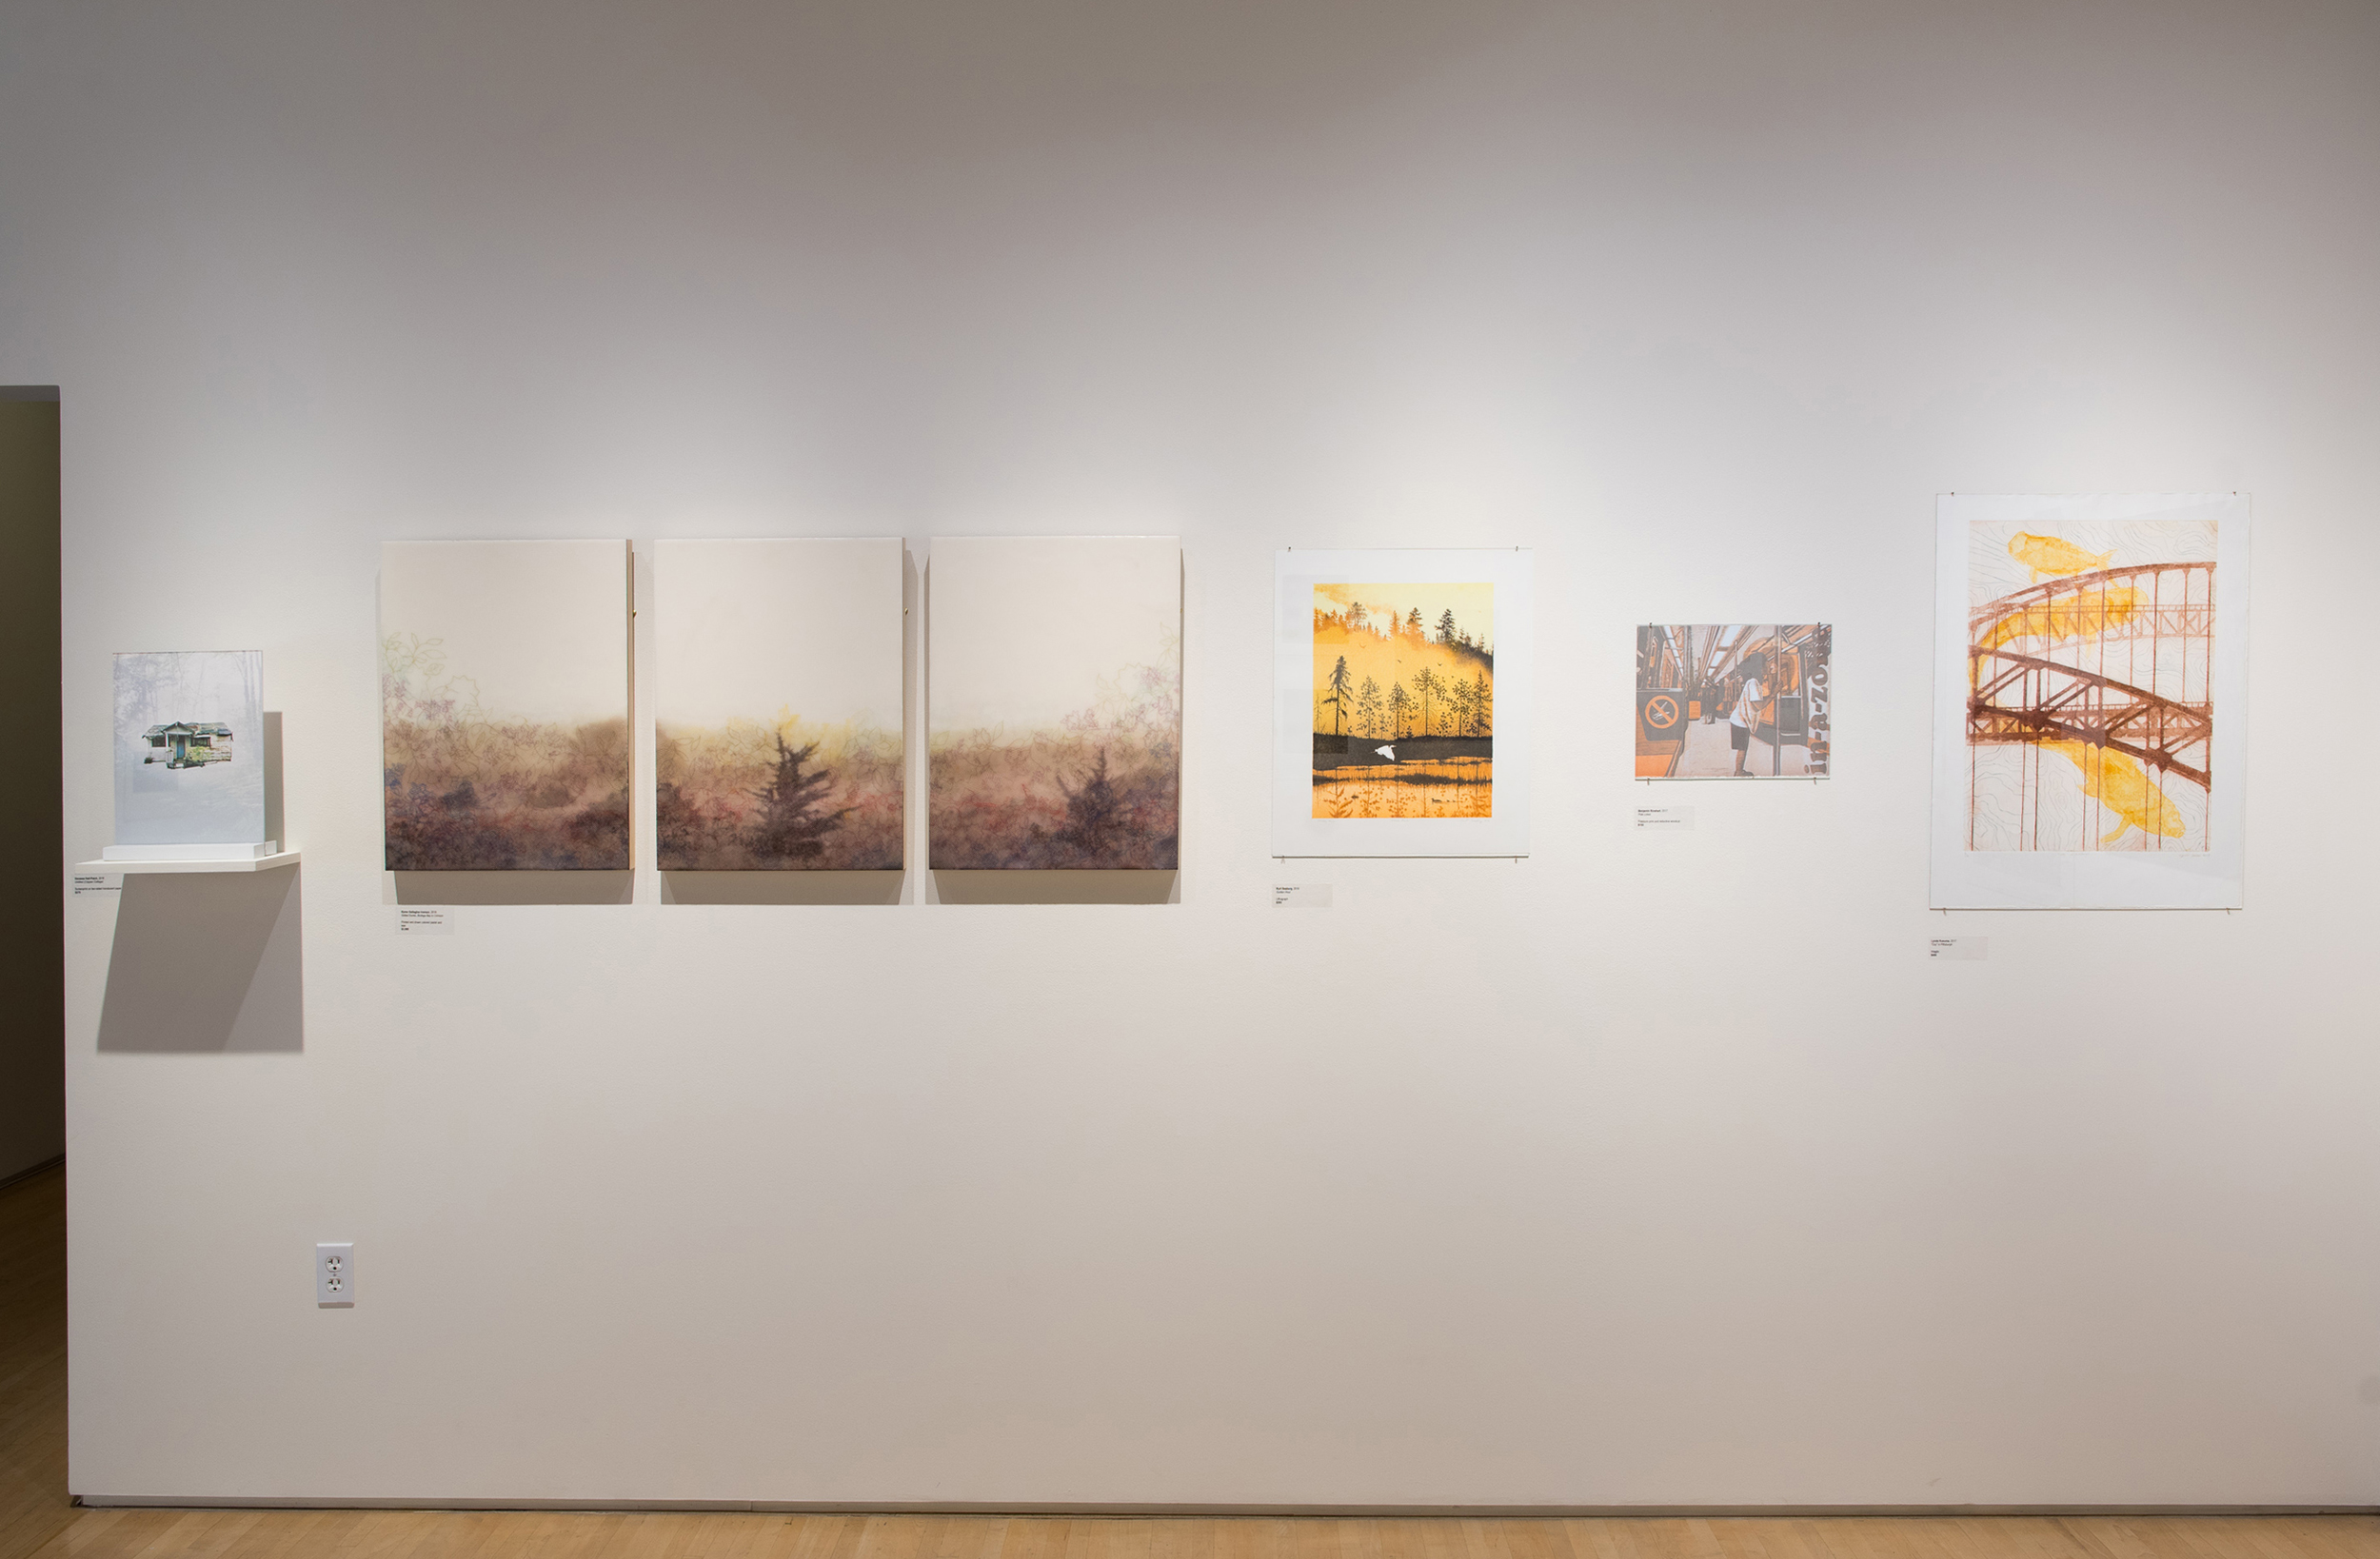 Highpoint PrintmakingStand Out Prints Exhibit180927a0367.JPG